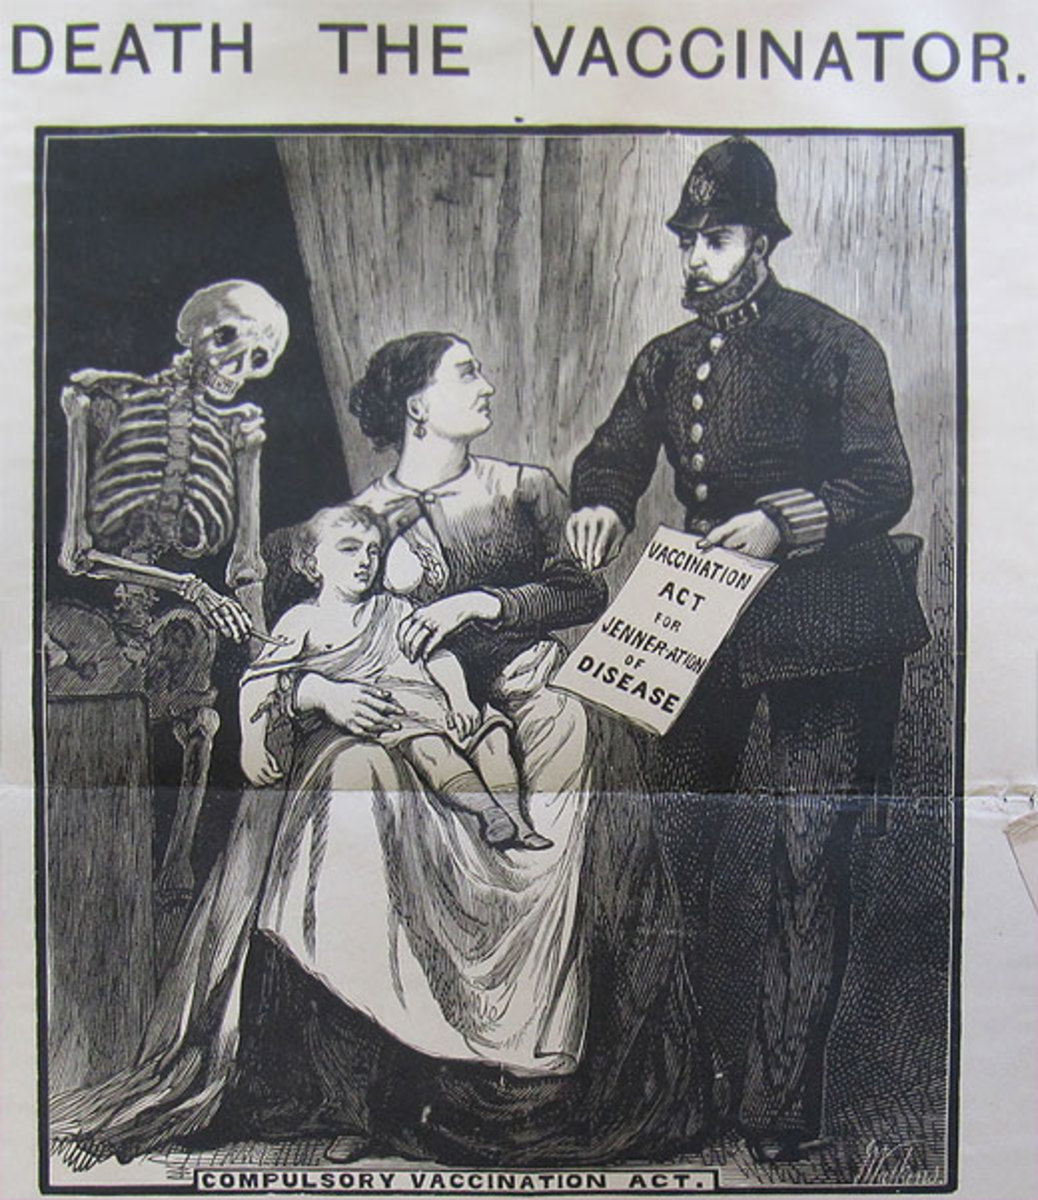 to-inoculate-or-not-antivaxxer-and-the-history-of-the-anti-vaccination-movement